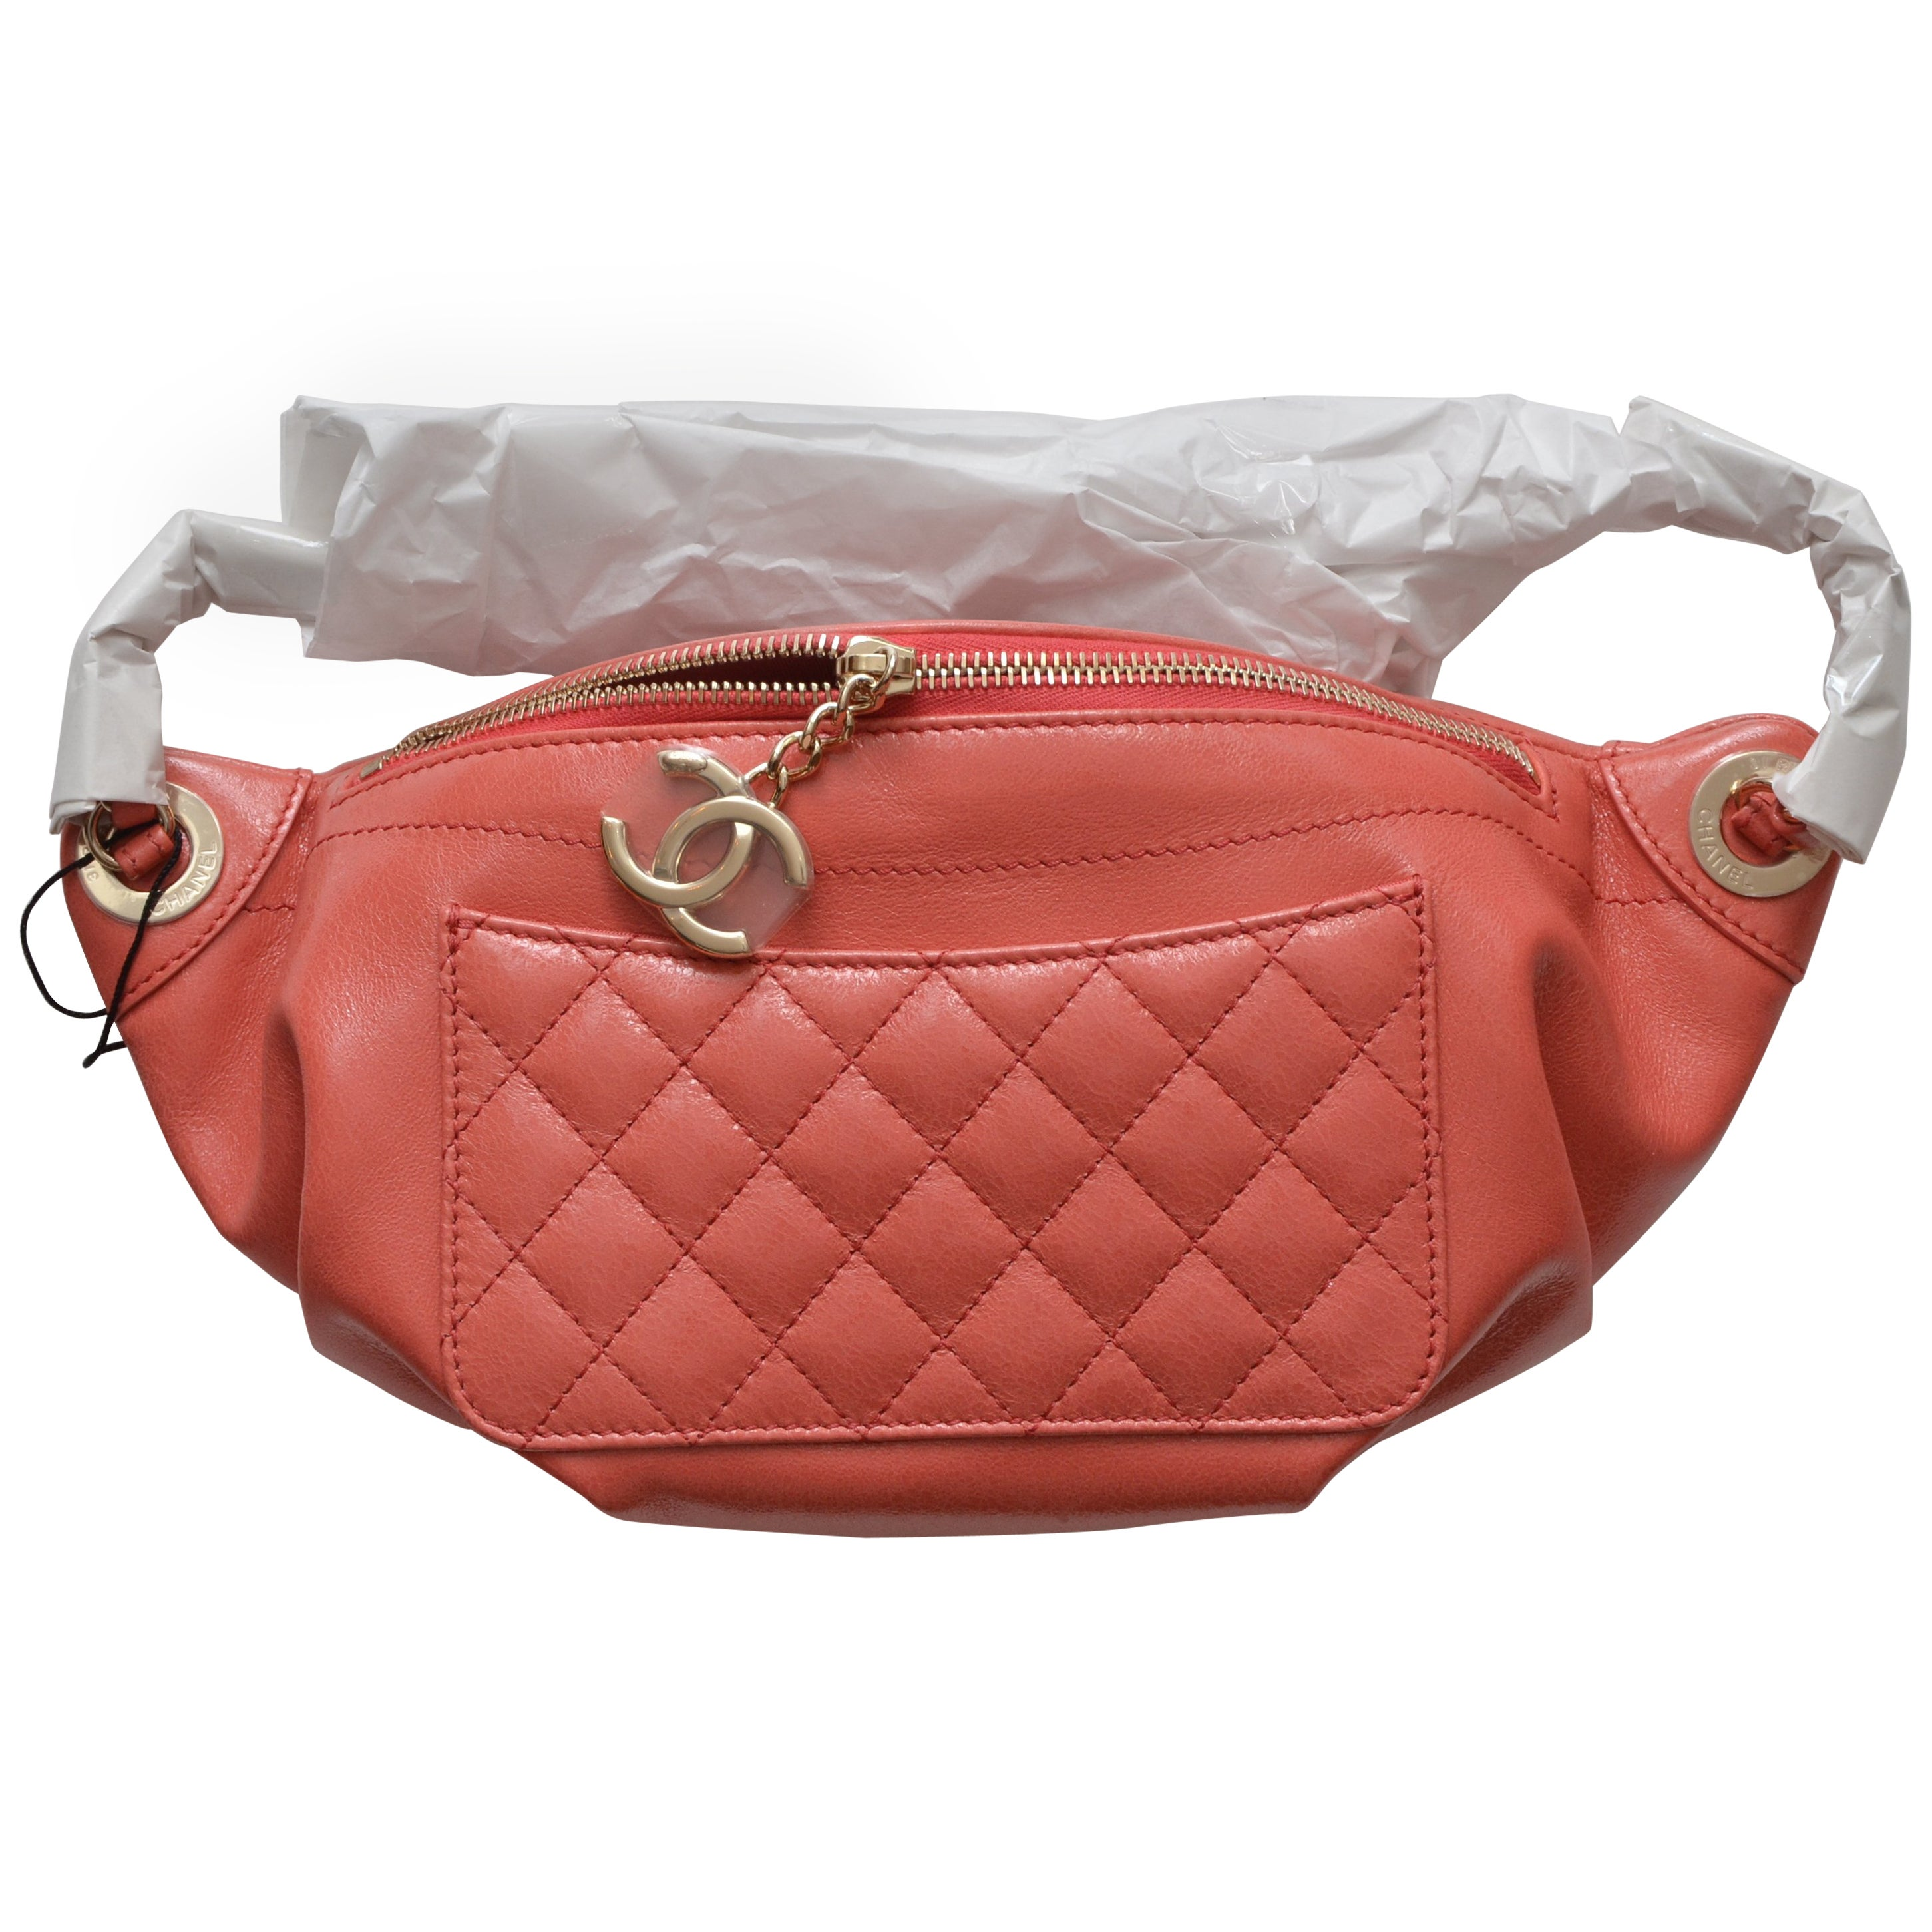 3e0fb4189e1bc3 Chanel Pink Fanny Pack Pink Lambskin Waist Belt Bag Sold Out NEW at 1stdibs